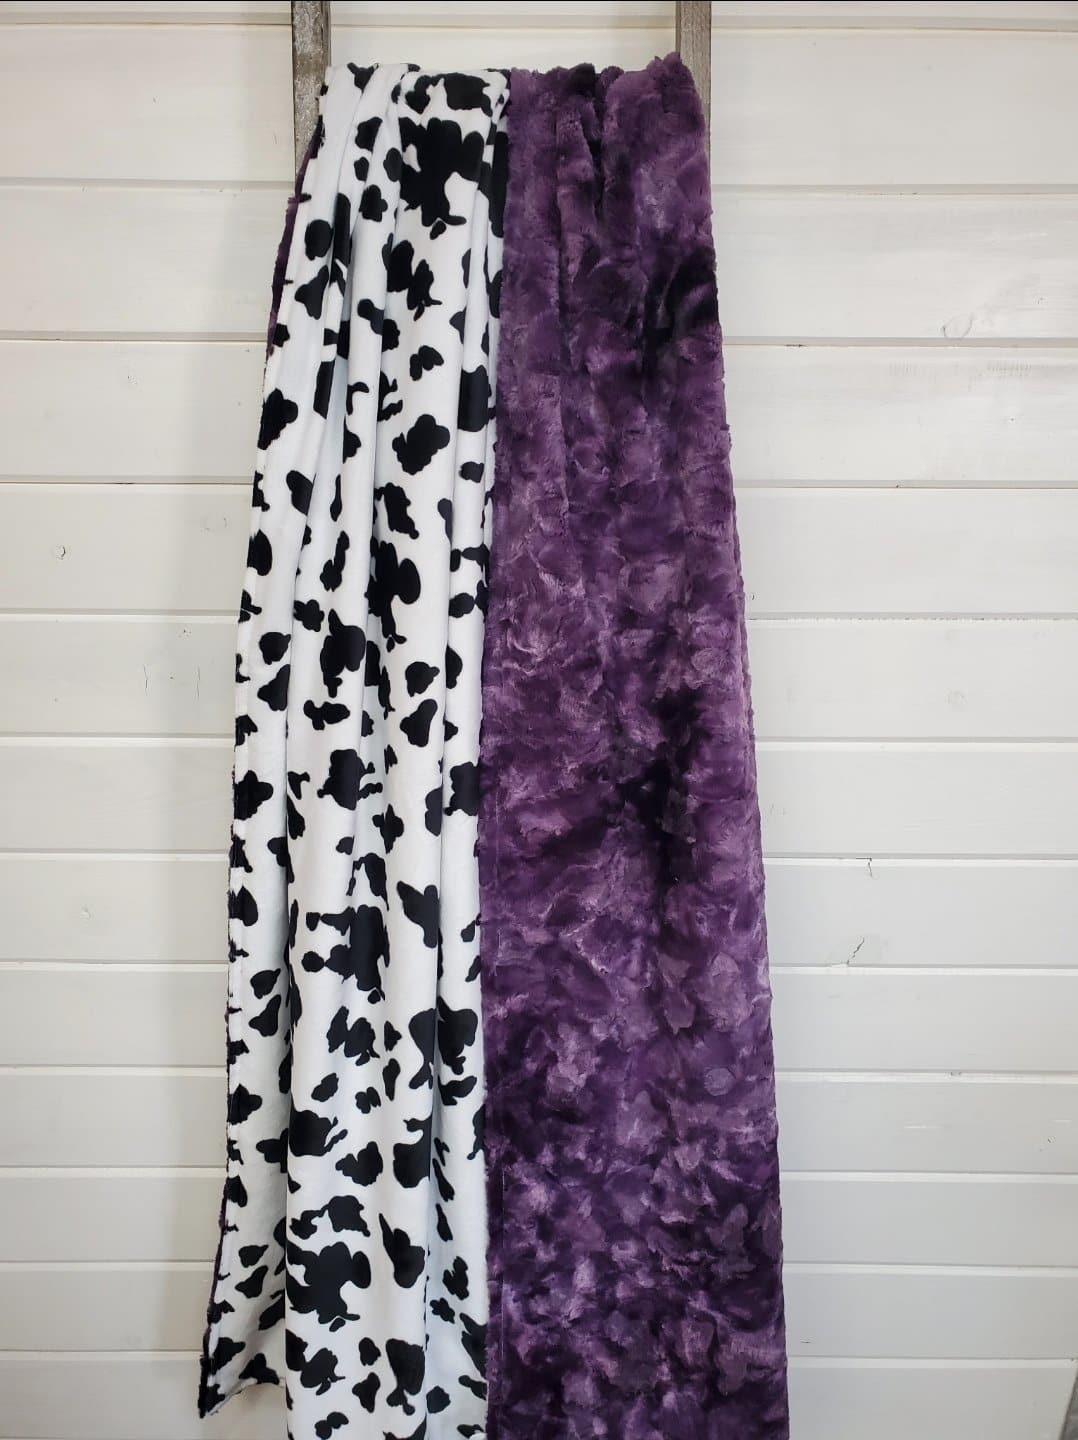 Minky Blanket- Black White Cow Minky and Minky Blanket